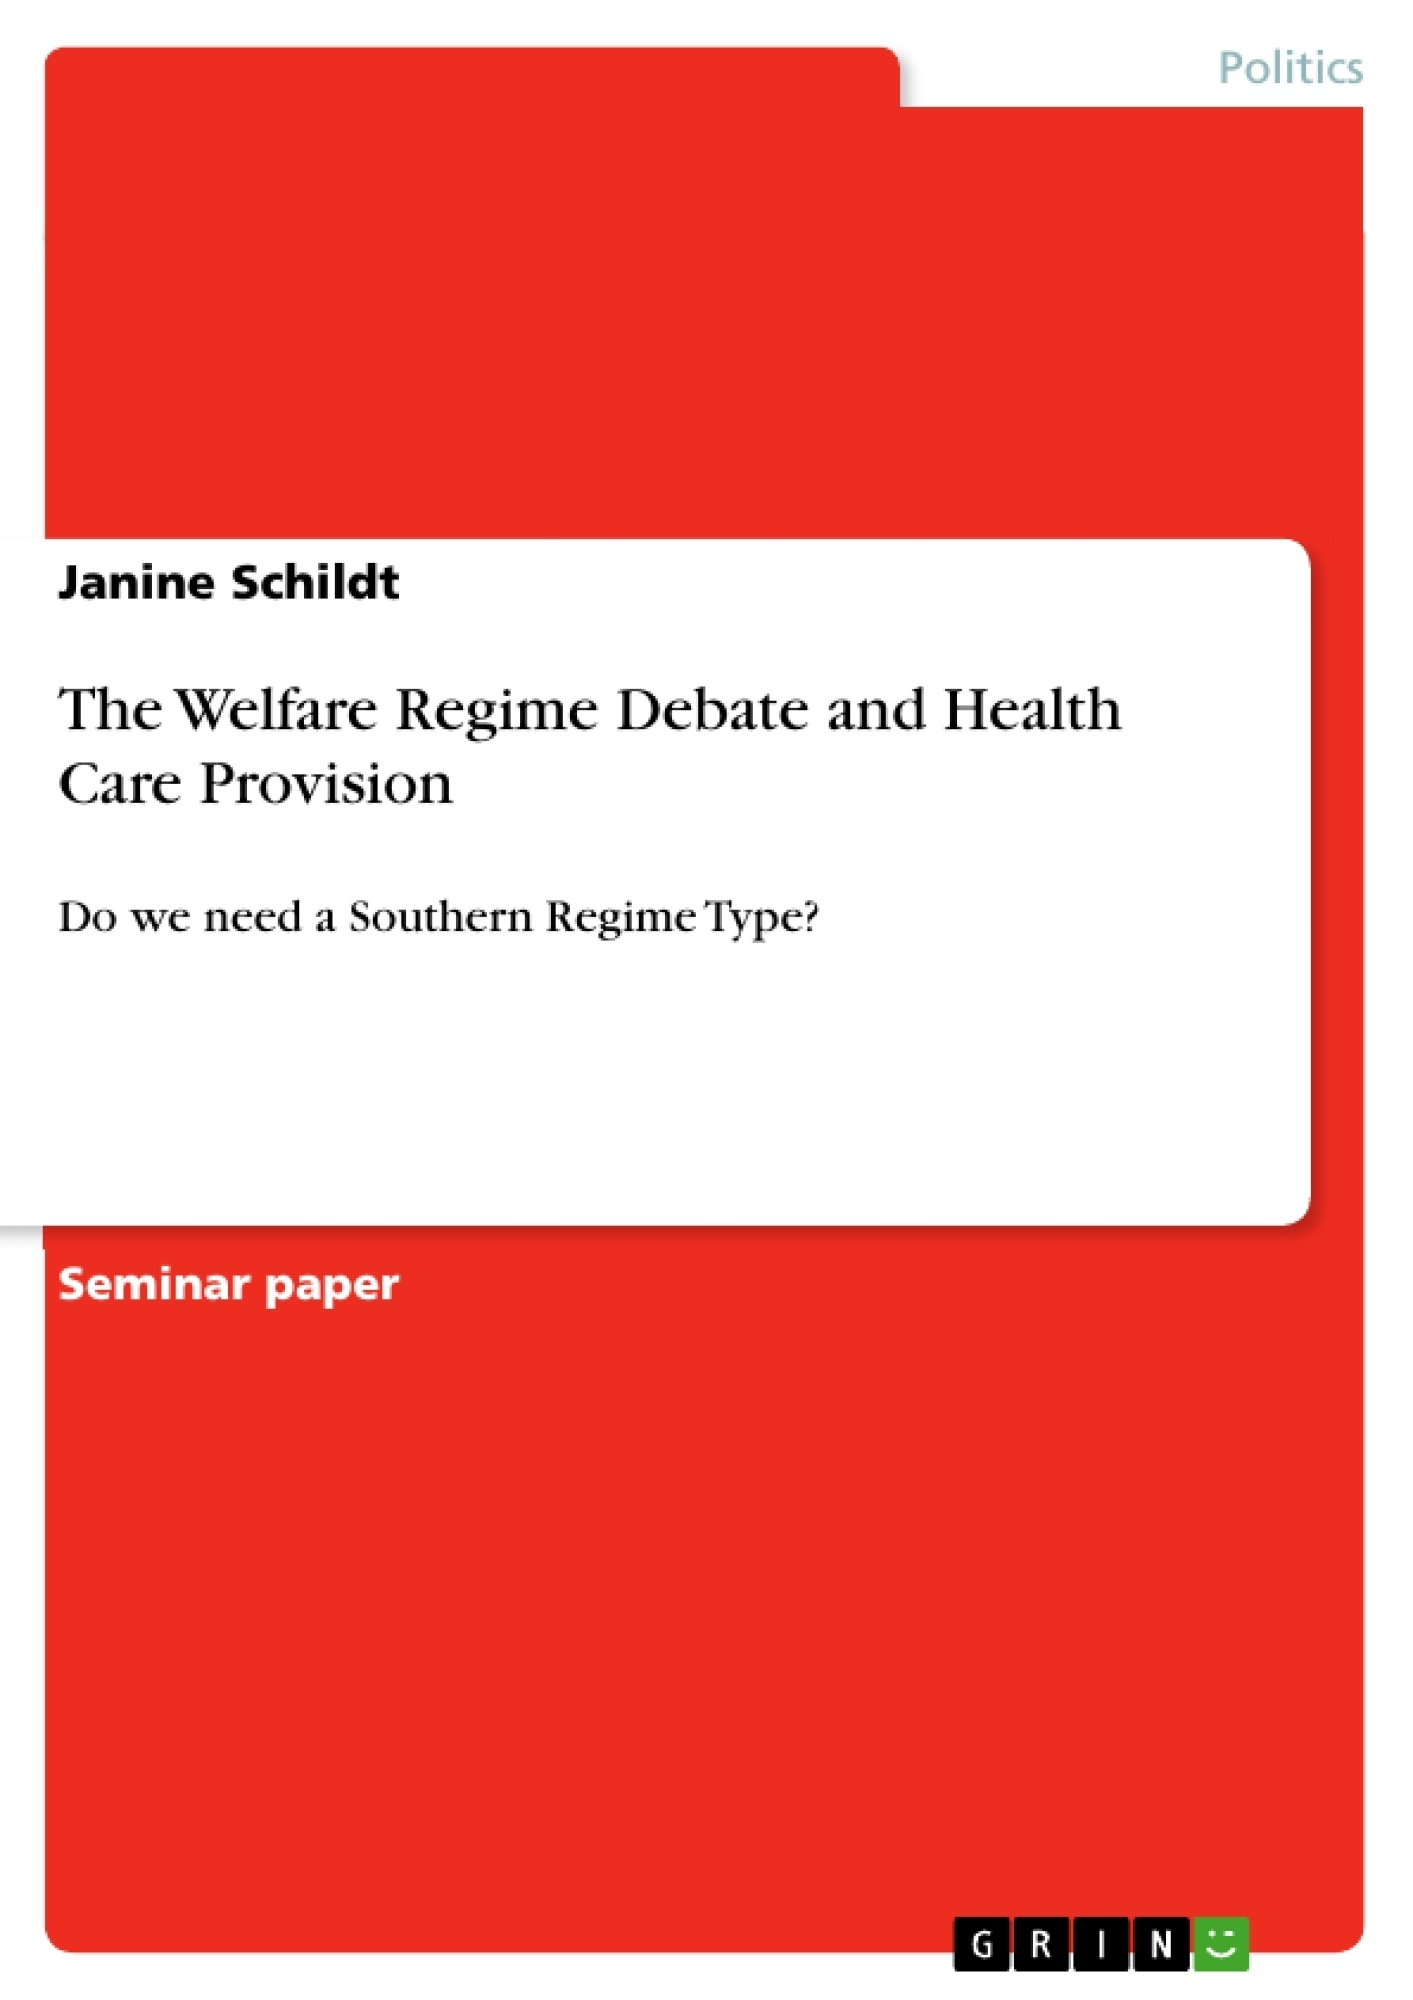 Title: The Welfare Regime Debate and Health Care Provision